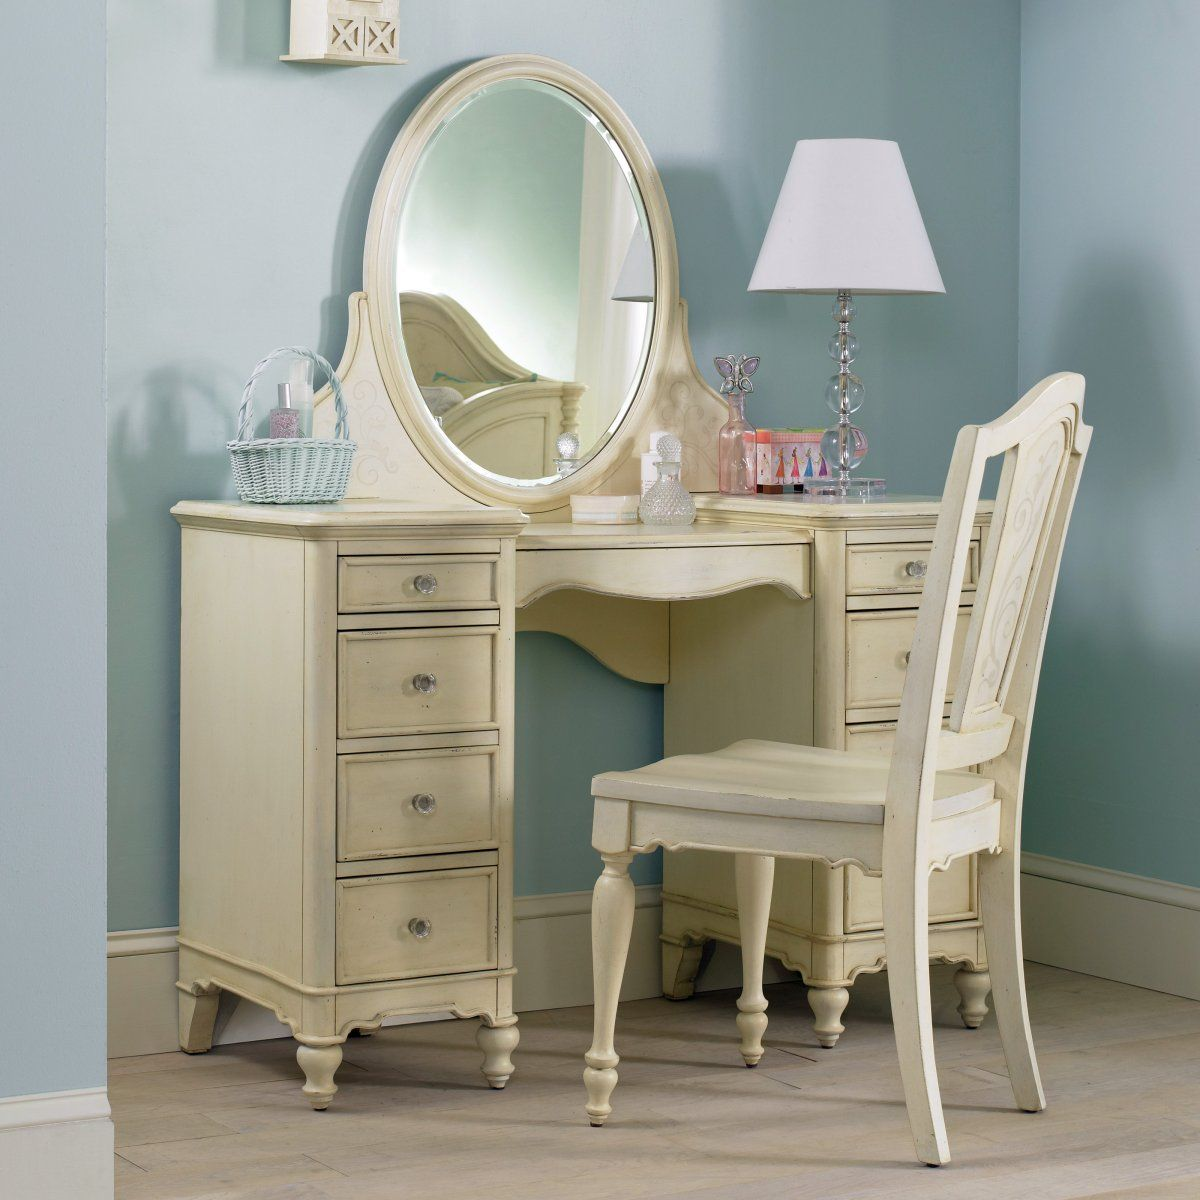 Love it, just WAY over budget | Rooms | Pinterest | Bedroom vanity ...